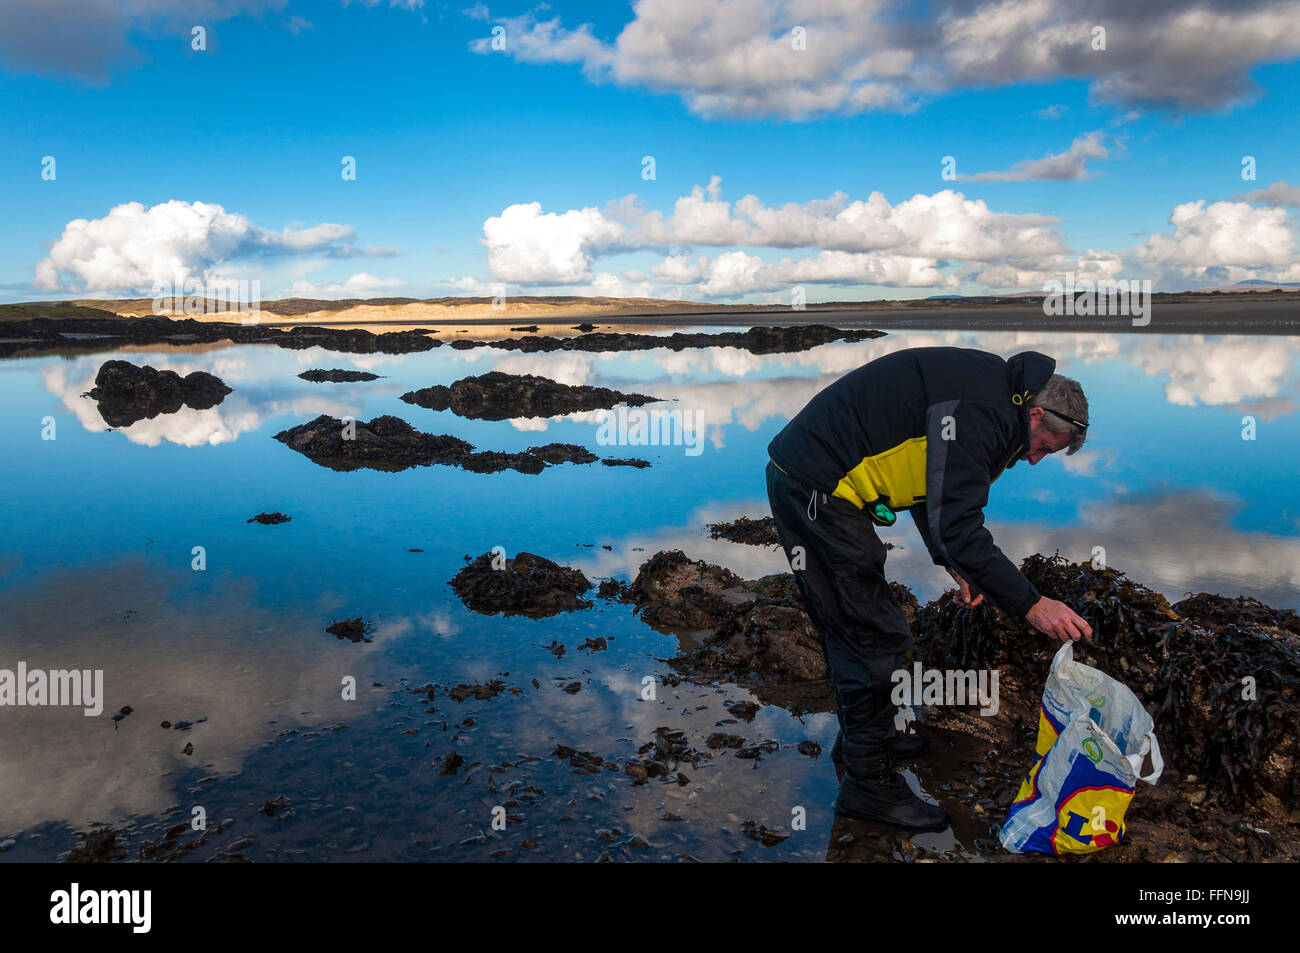 A man collects mussels on a calm day on Ireland's west coast near Ardara, County Donegal, Ireland - Stock Image